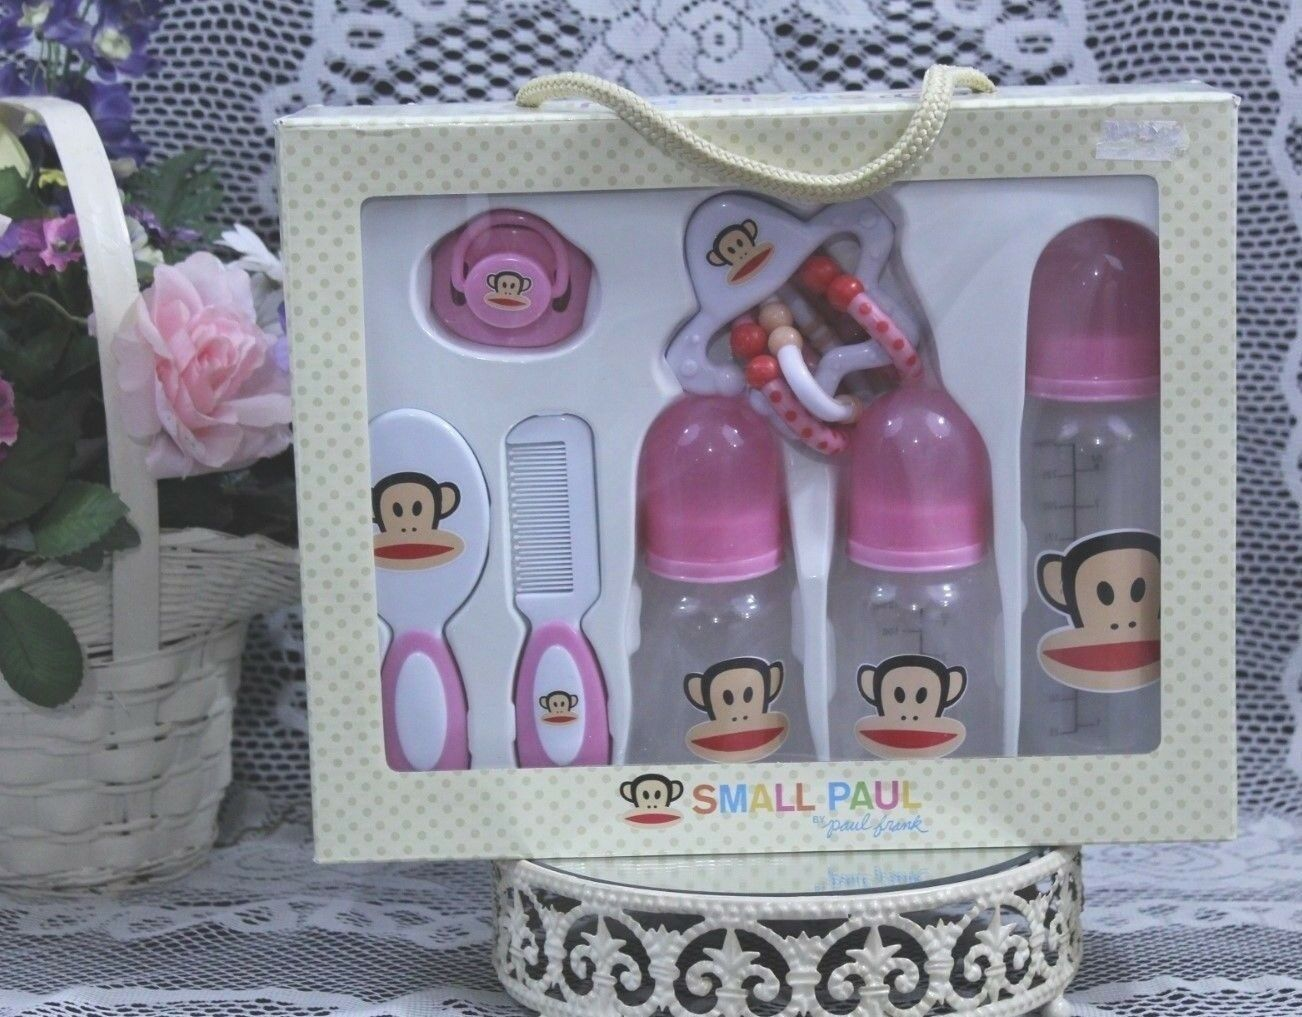 Small Paul by Paul Frank Infant Care Gift Set